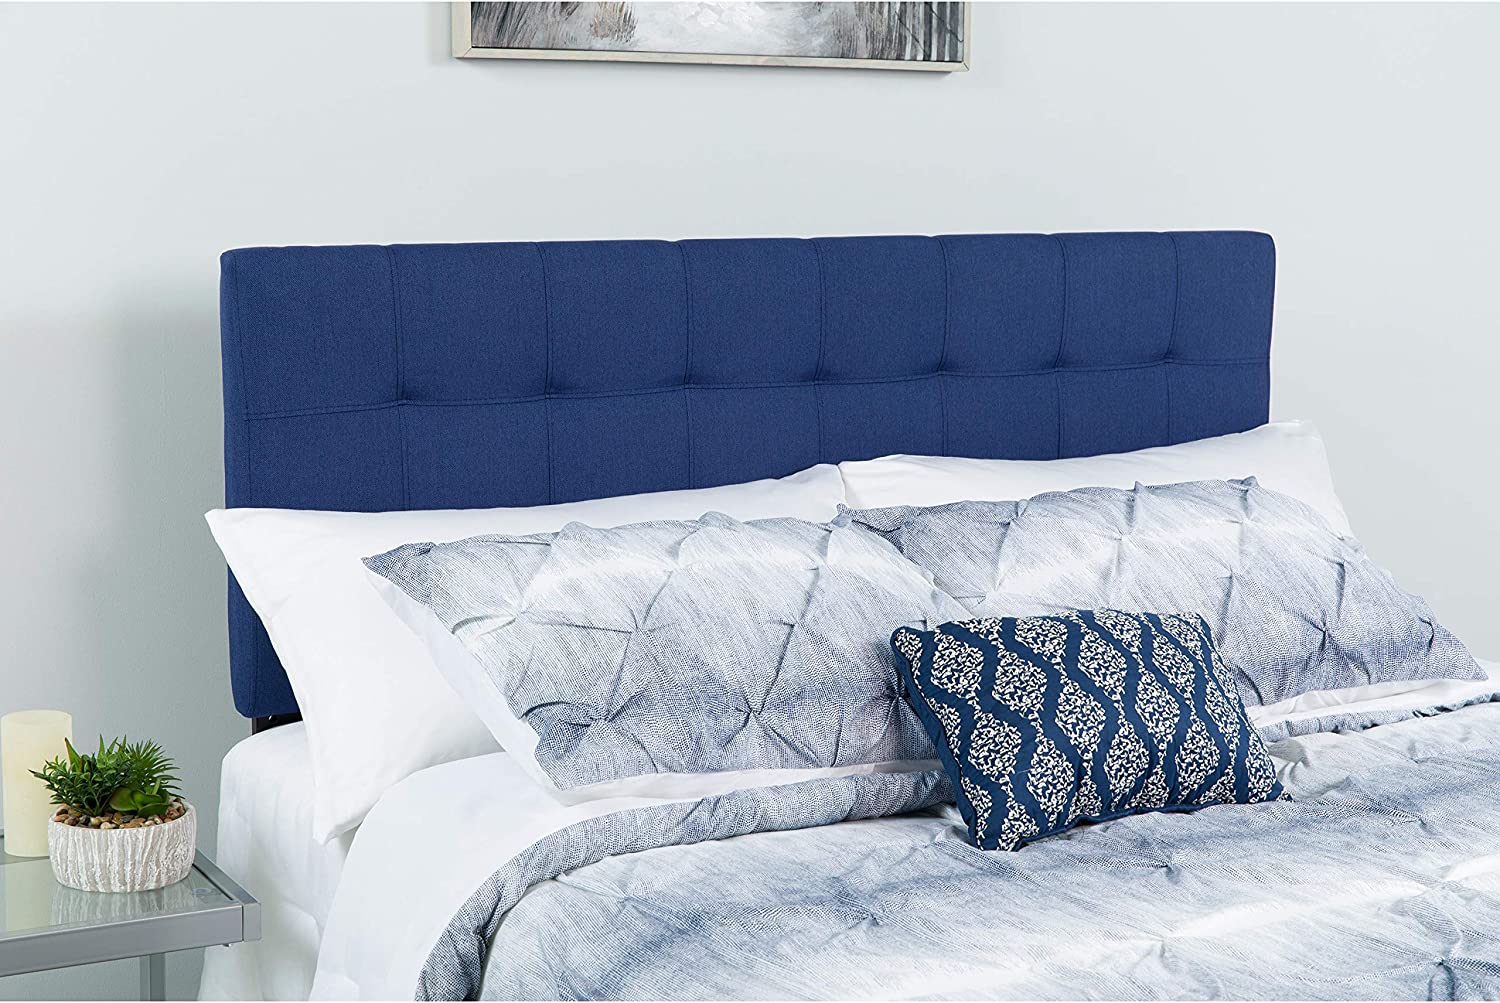 Flash Furniture Bedford Tufted Upholstered Queen Size Headboard in Navy Fabric